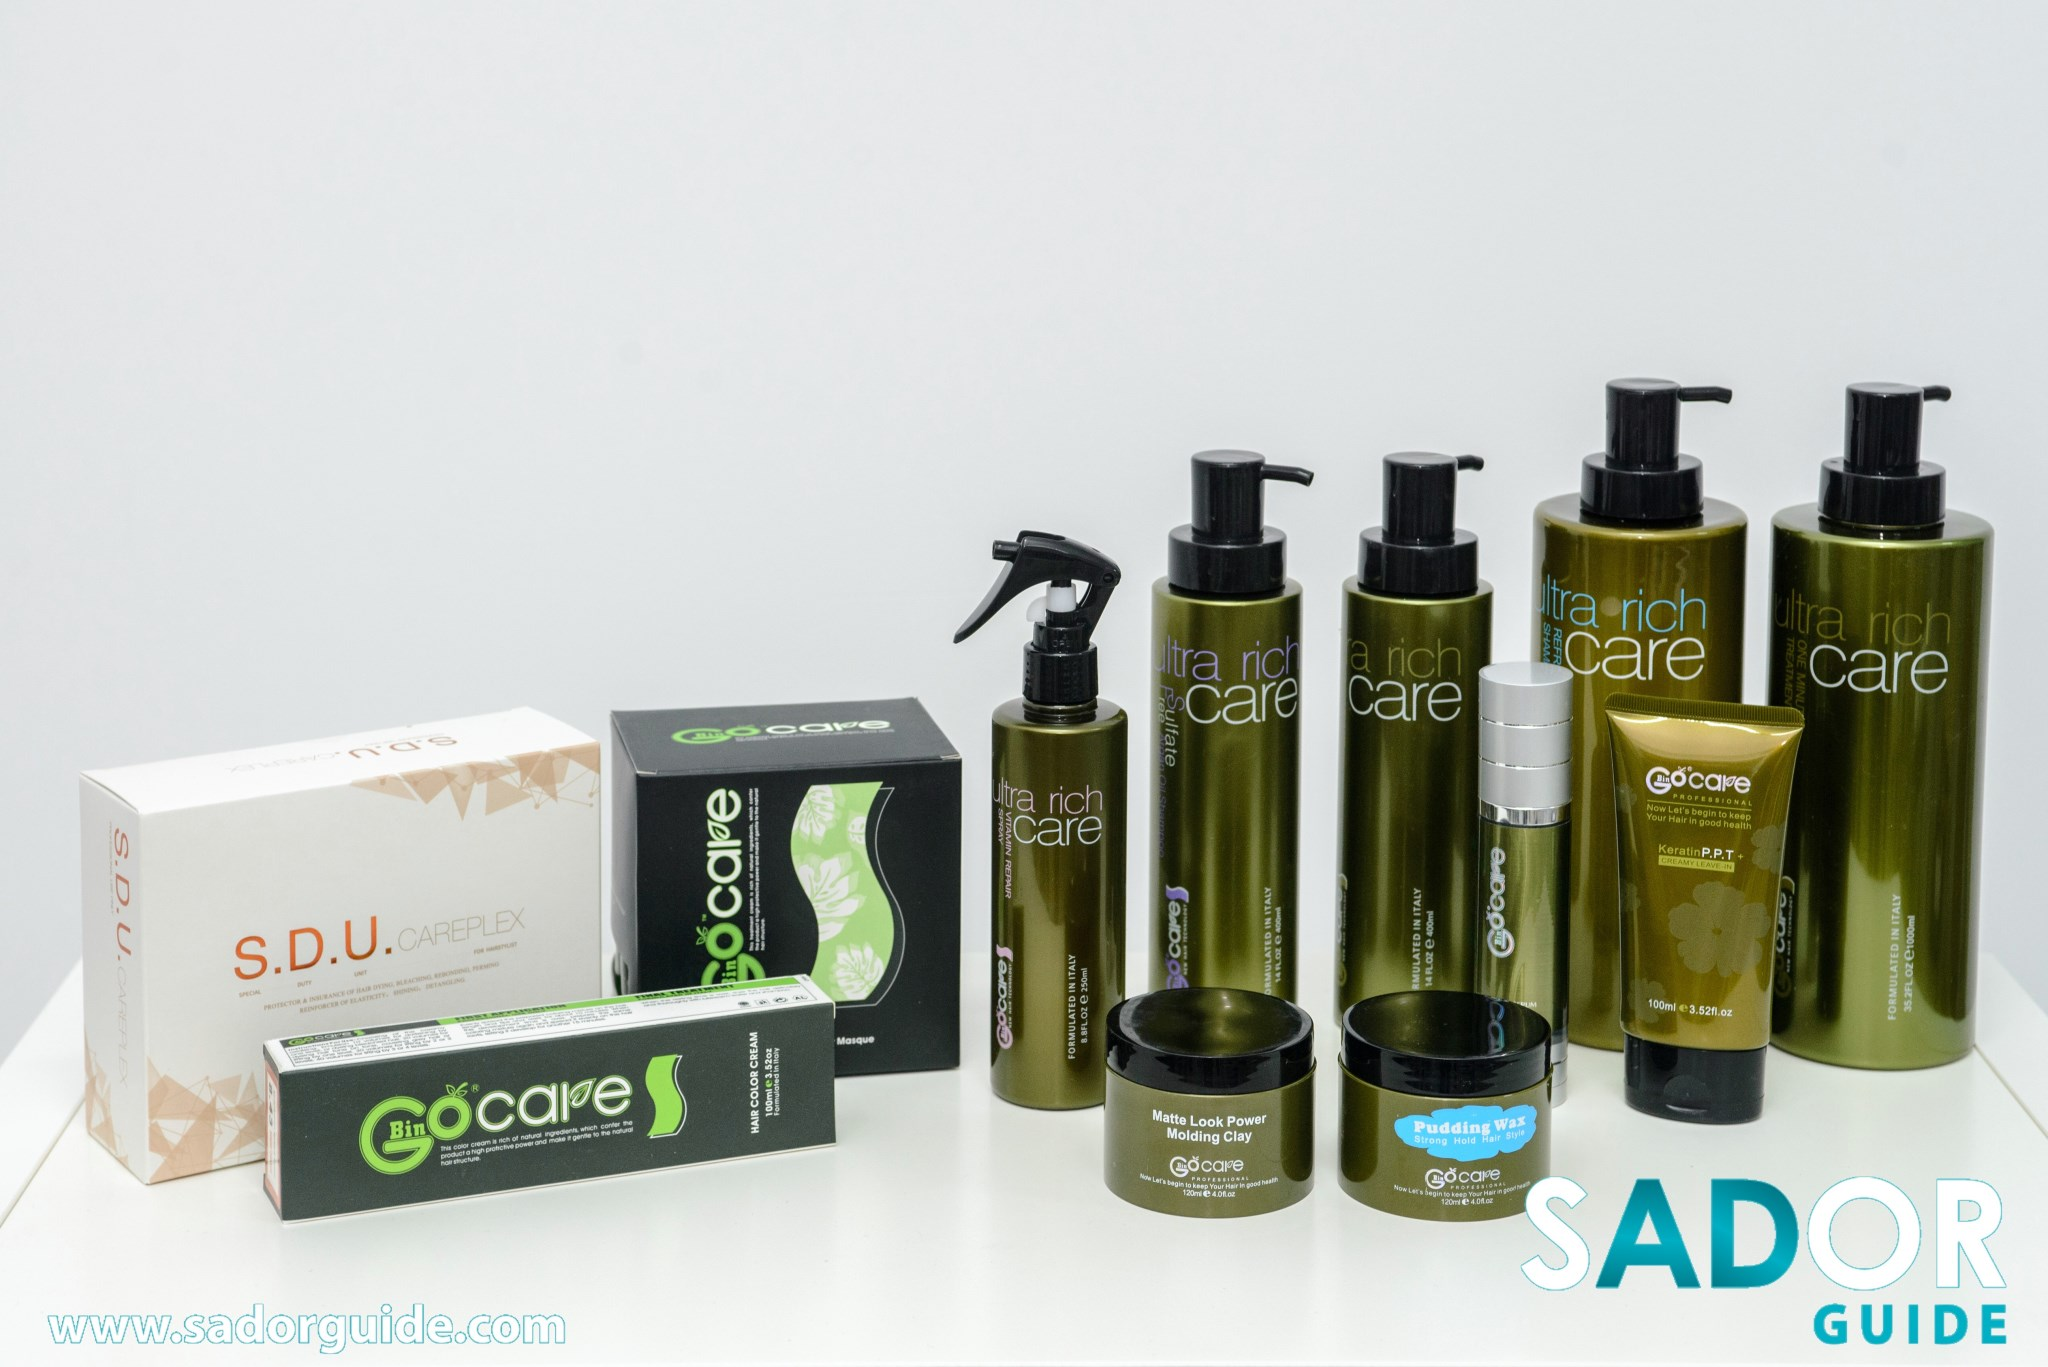 professional hair styling products gocare professional hair care ltd sador guide 8036 | GOCARE 9 YIO 4751